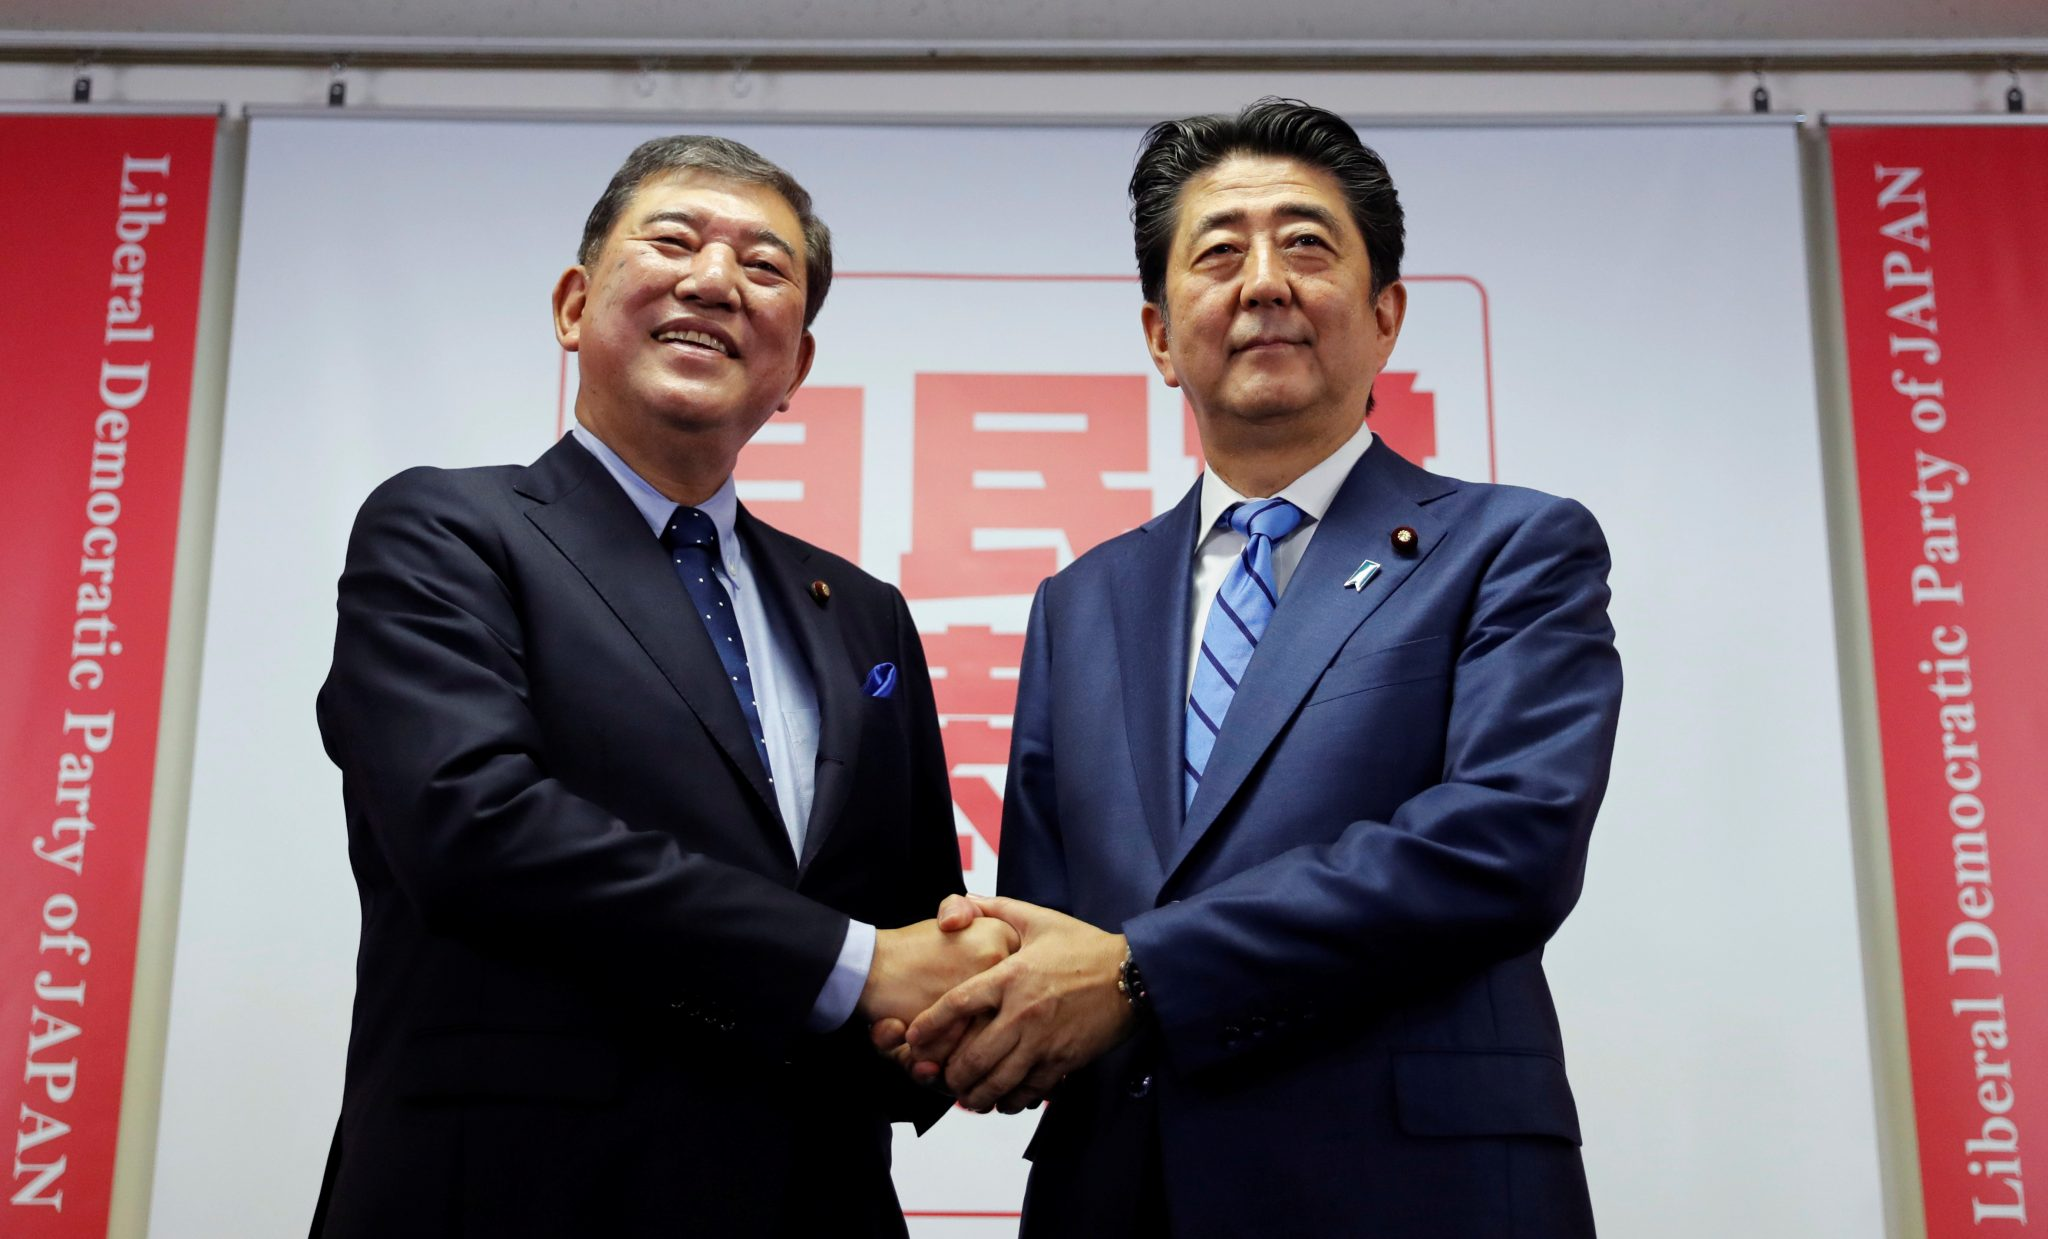 Japan's Prime Minister Shinzo Abe, who is also the ruling Liberal Democratic Party (LDP) leader, and ex-defence minister Shigeru Ishiba shake hands at the start of their joint news conference for the party leader election at the party's headquarters in Tokyo, Japan September 10, 2018. REUTERS/Toru Hanai - RC14D2444010